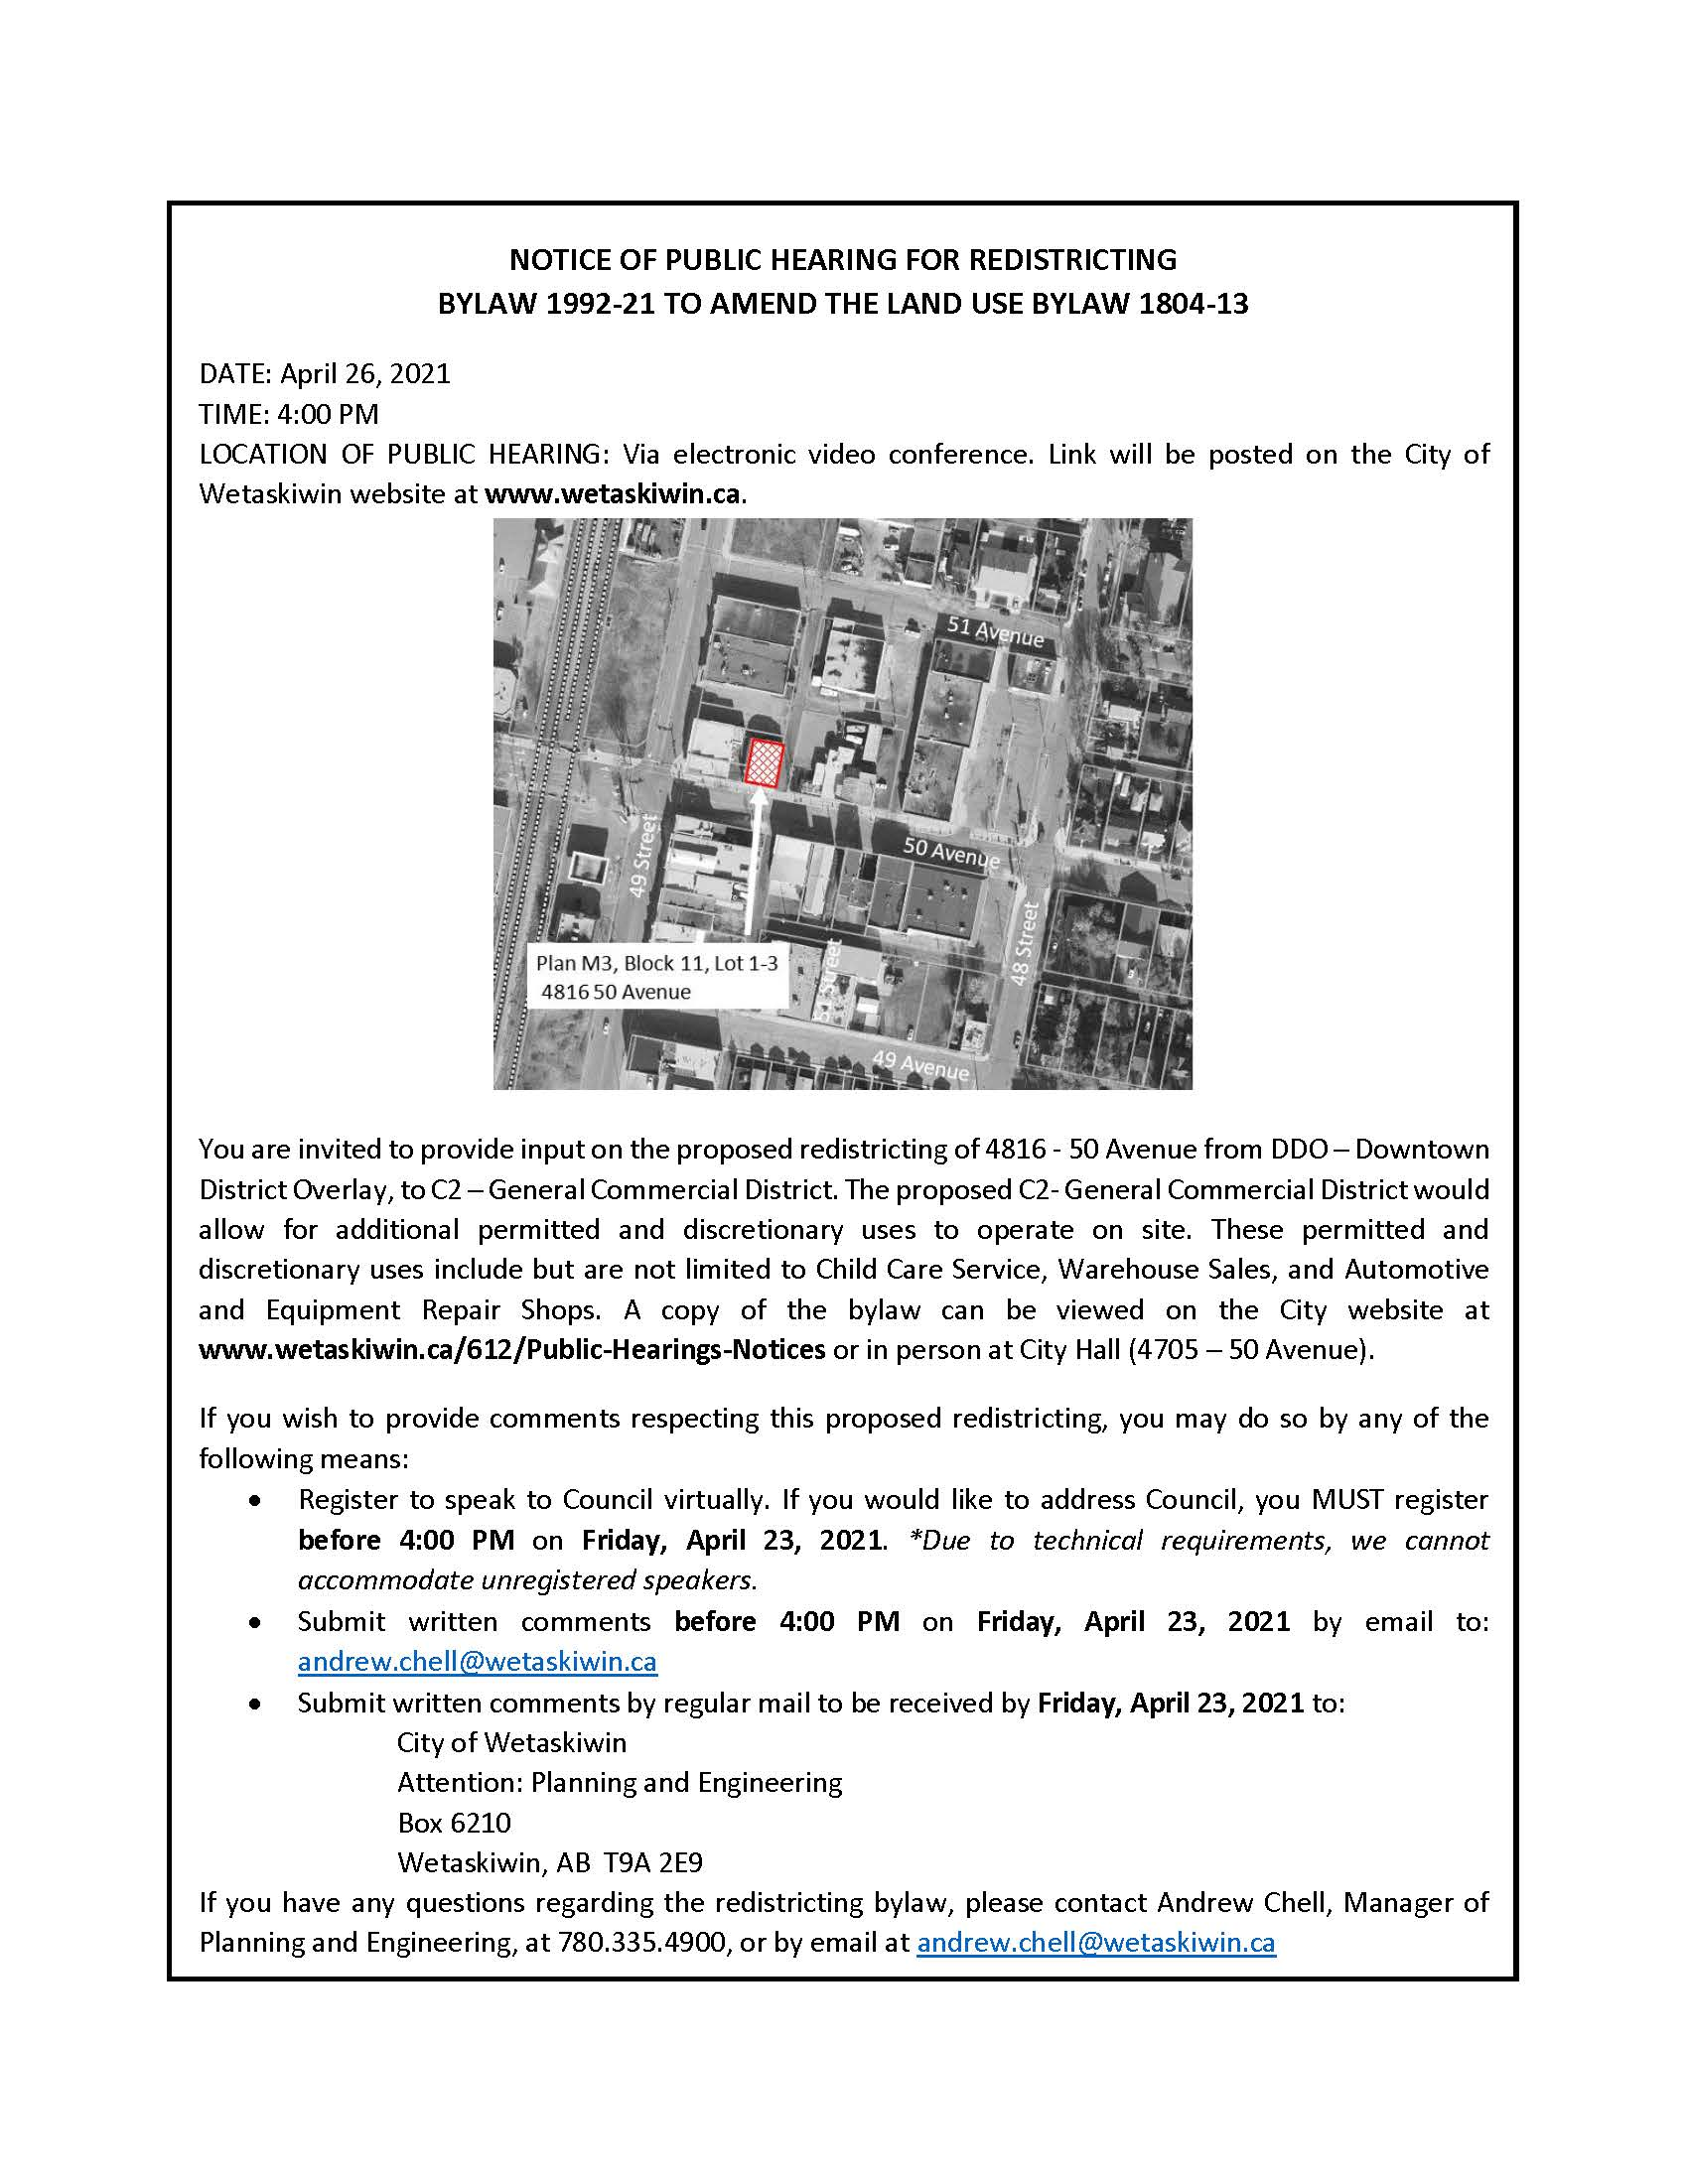 Public Hearing notice - 4816-50 Ave - Apr.26.2021